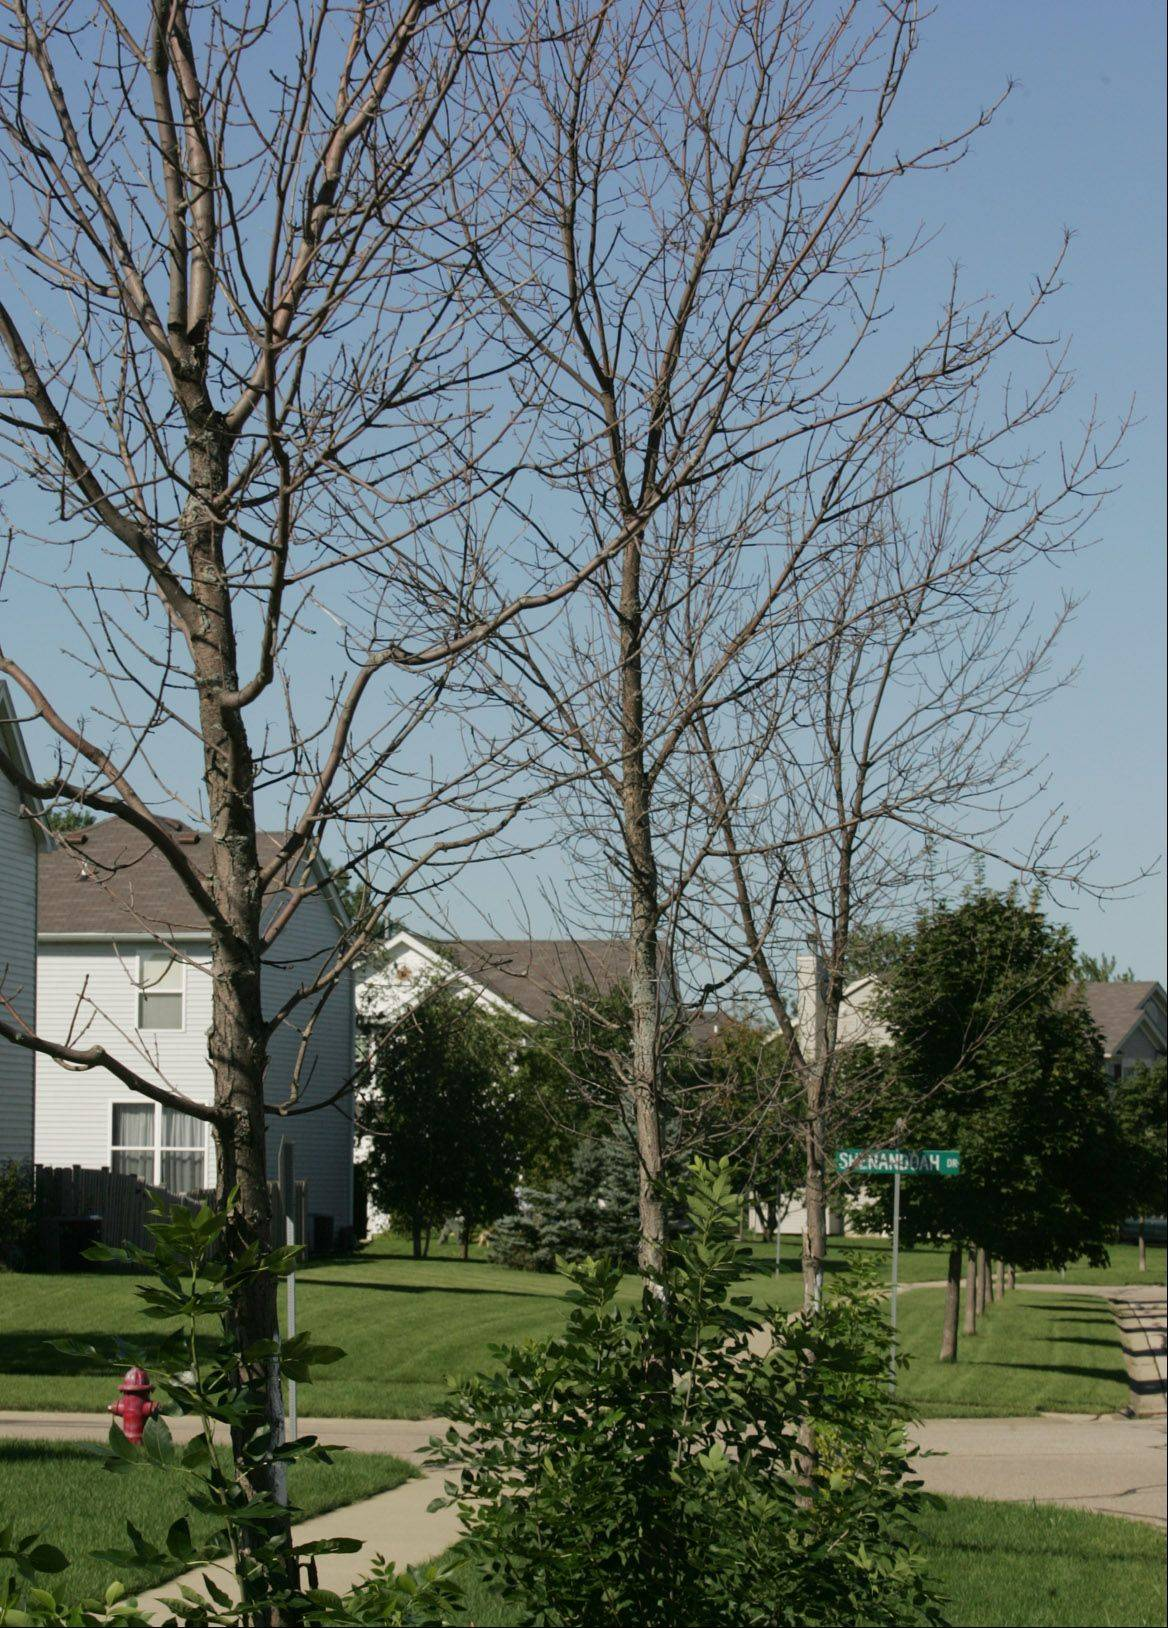 The emerald ash borer has made its way to Carpentersville, feasting on these three trees along Alexandria Lane.